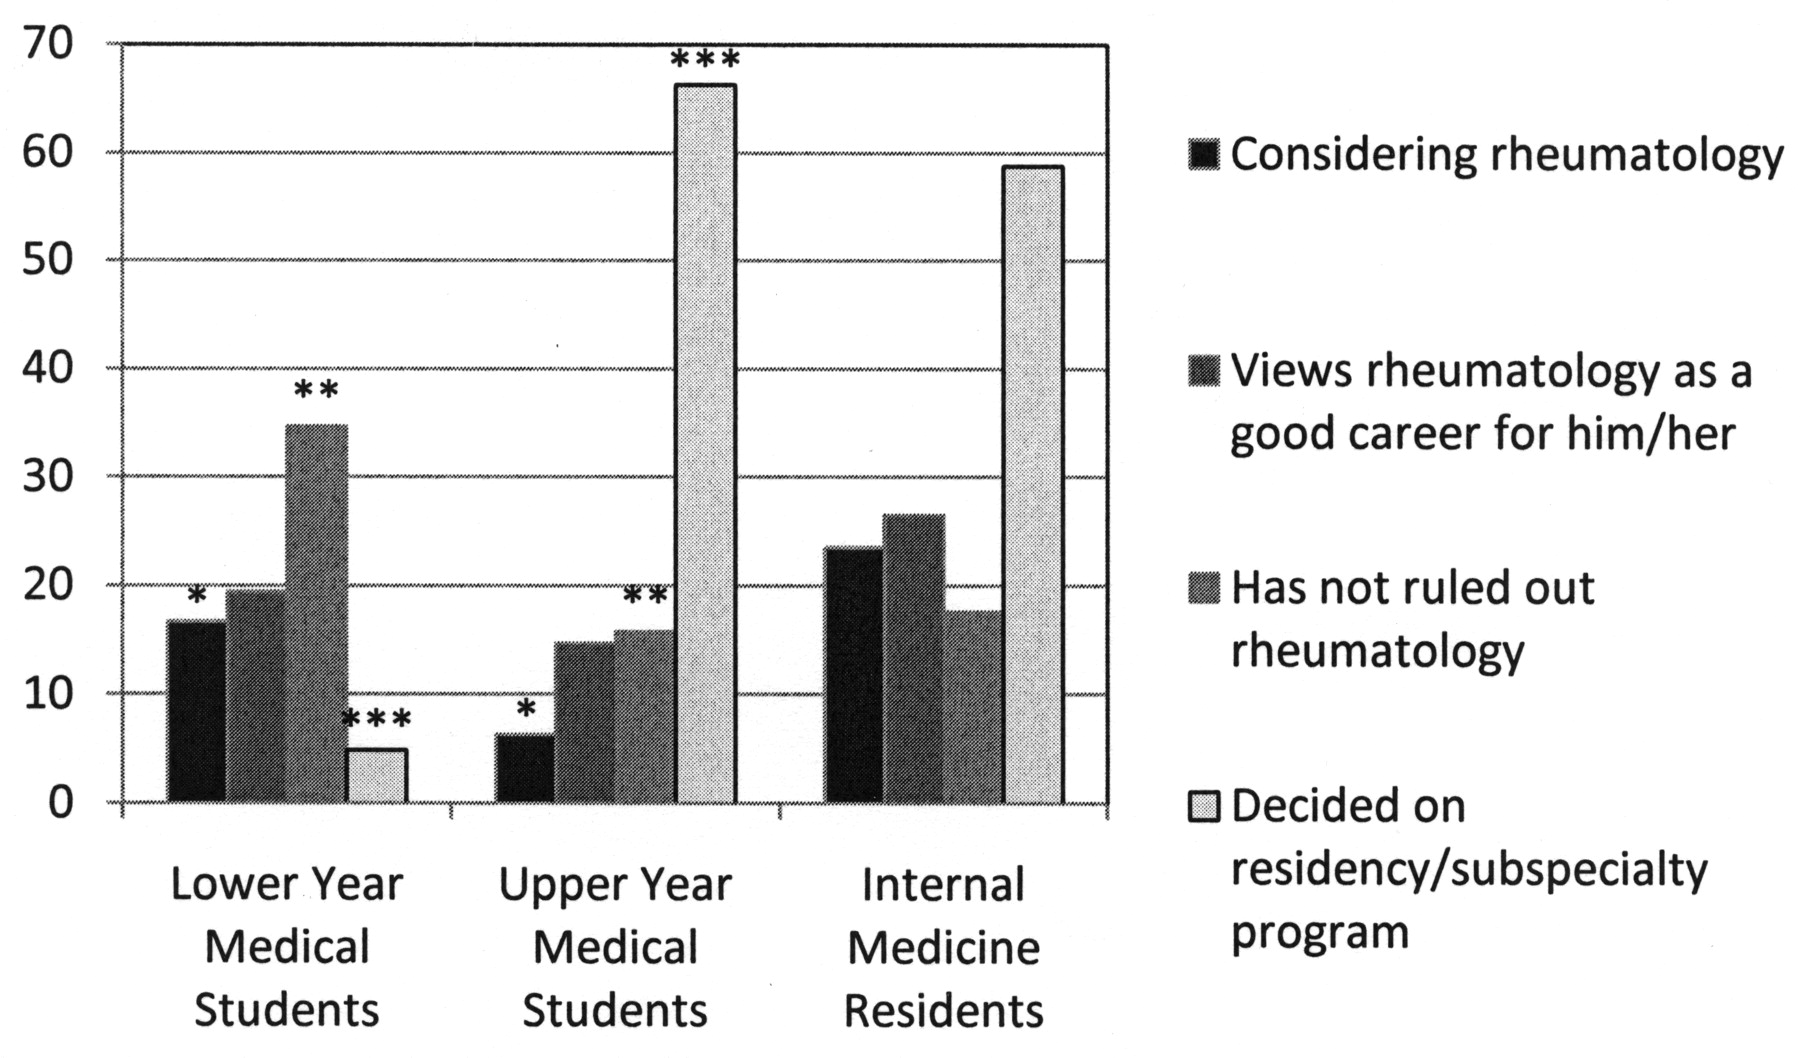 Strategies to Improve Recruitment into Rheumatology: Results